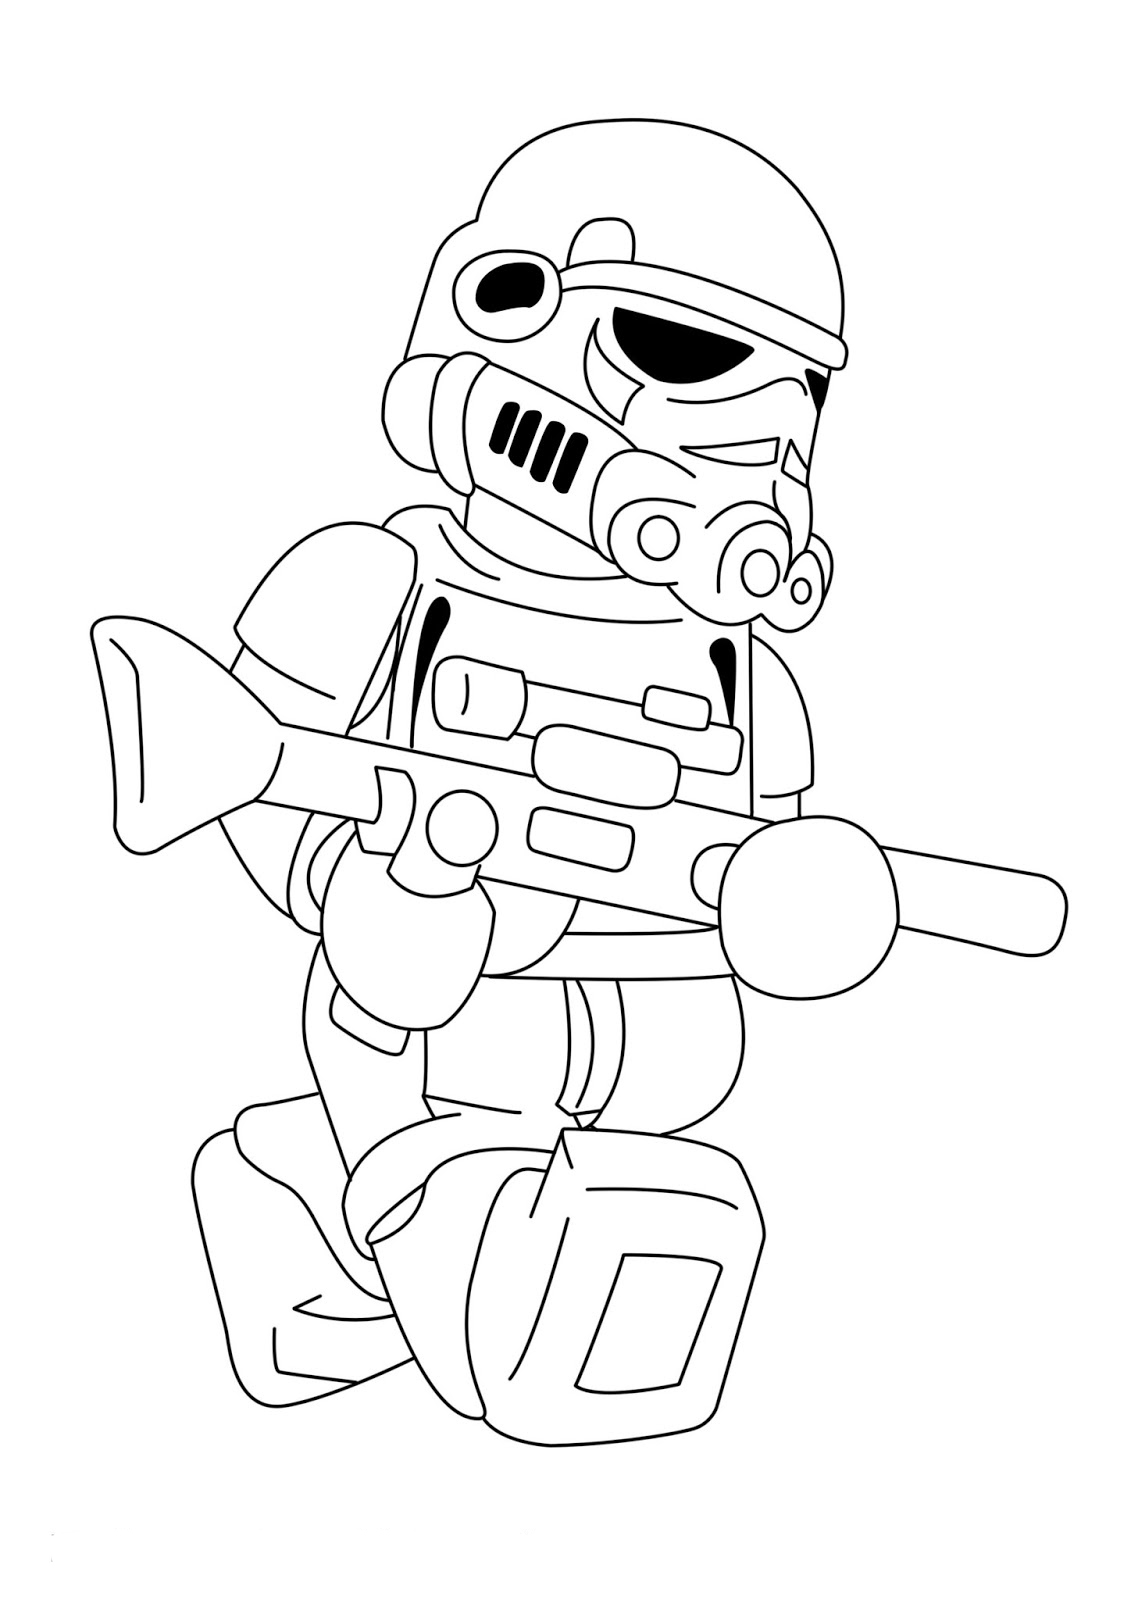 lego star wars pictures to color lego star wars coloring pages best coloring pages for kids star wars lego pictures to color